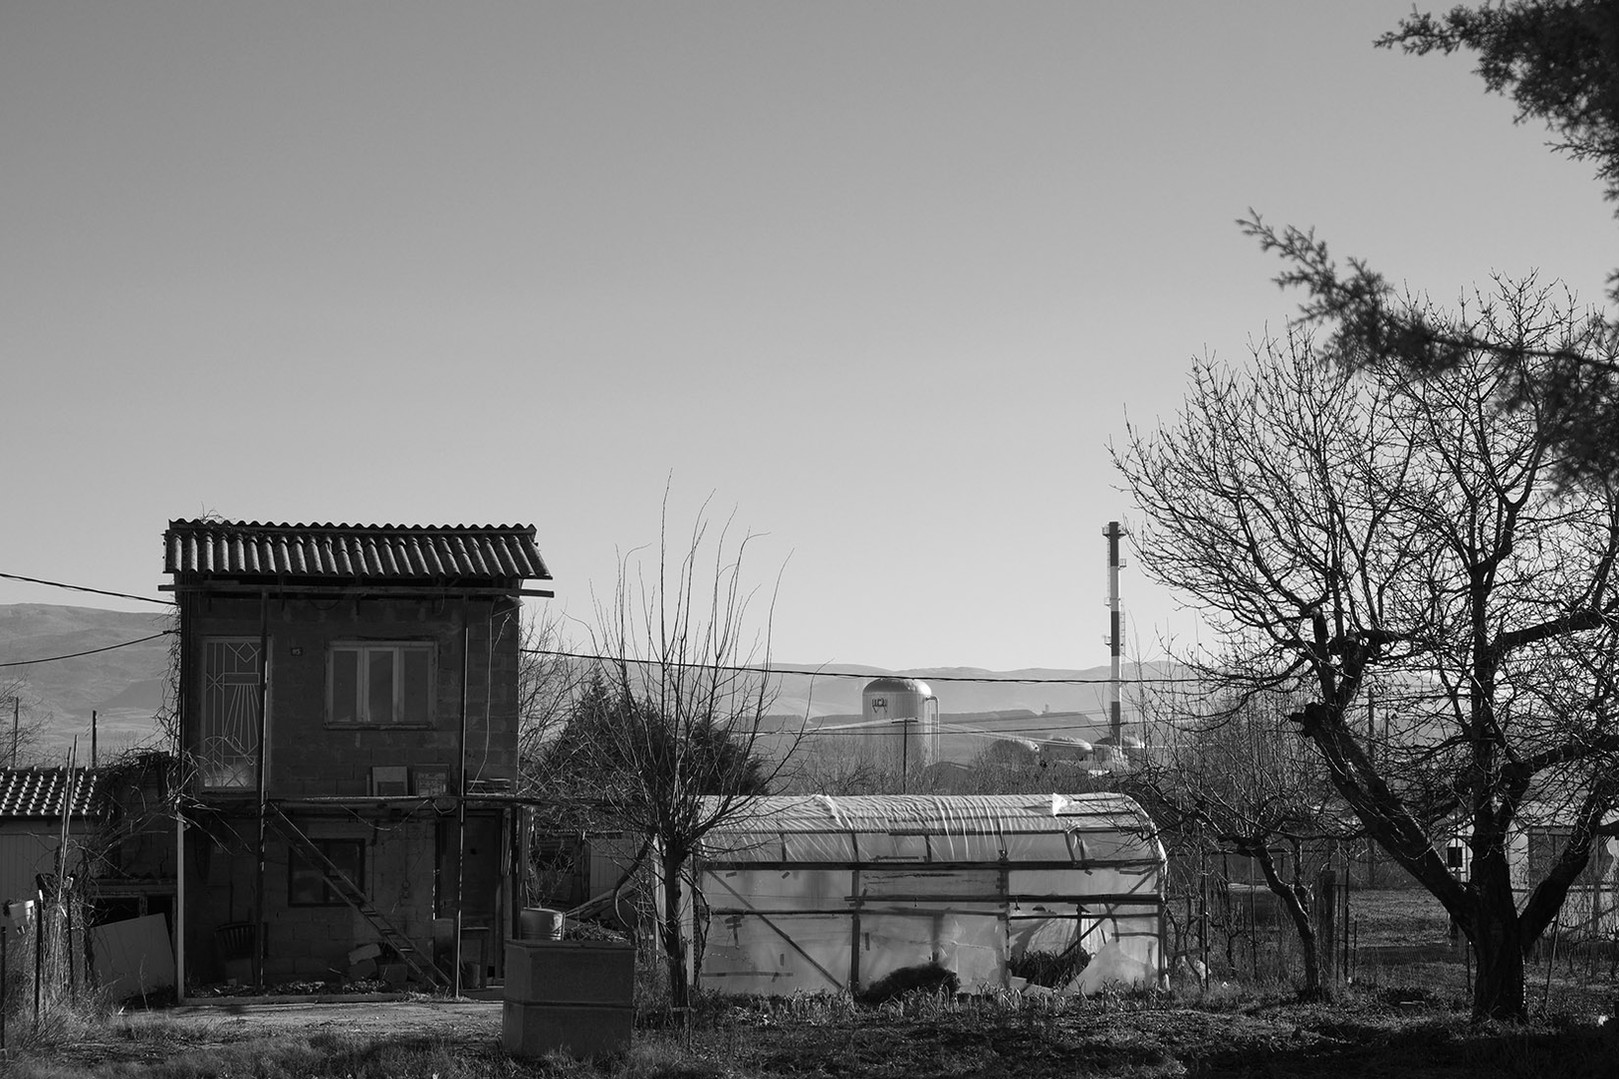 The factory. Landscape at the outskirts of my town.  The cold winter in my heart. Pollution in the air. This smell comes directly form my memories as a child. © DIMITRIOS GIOVIS